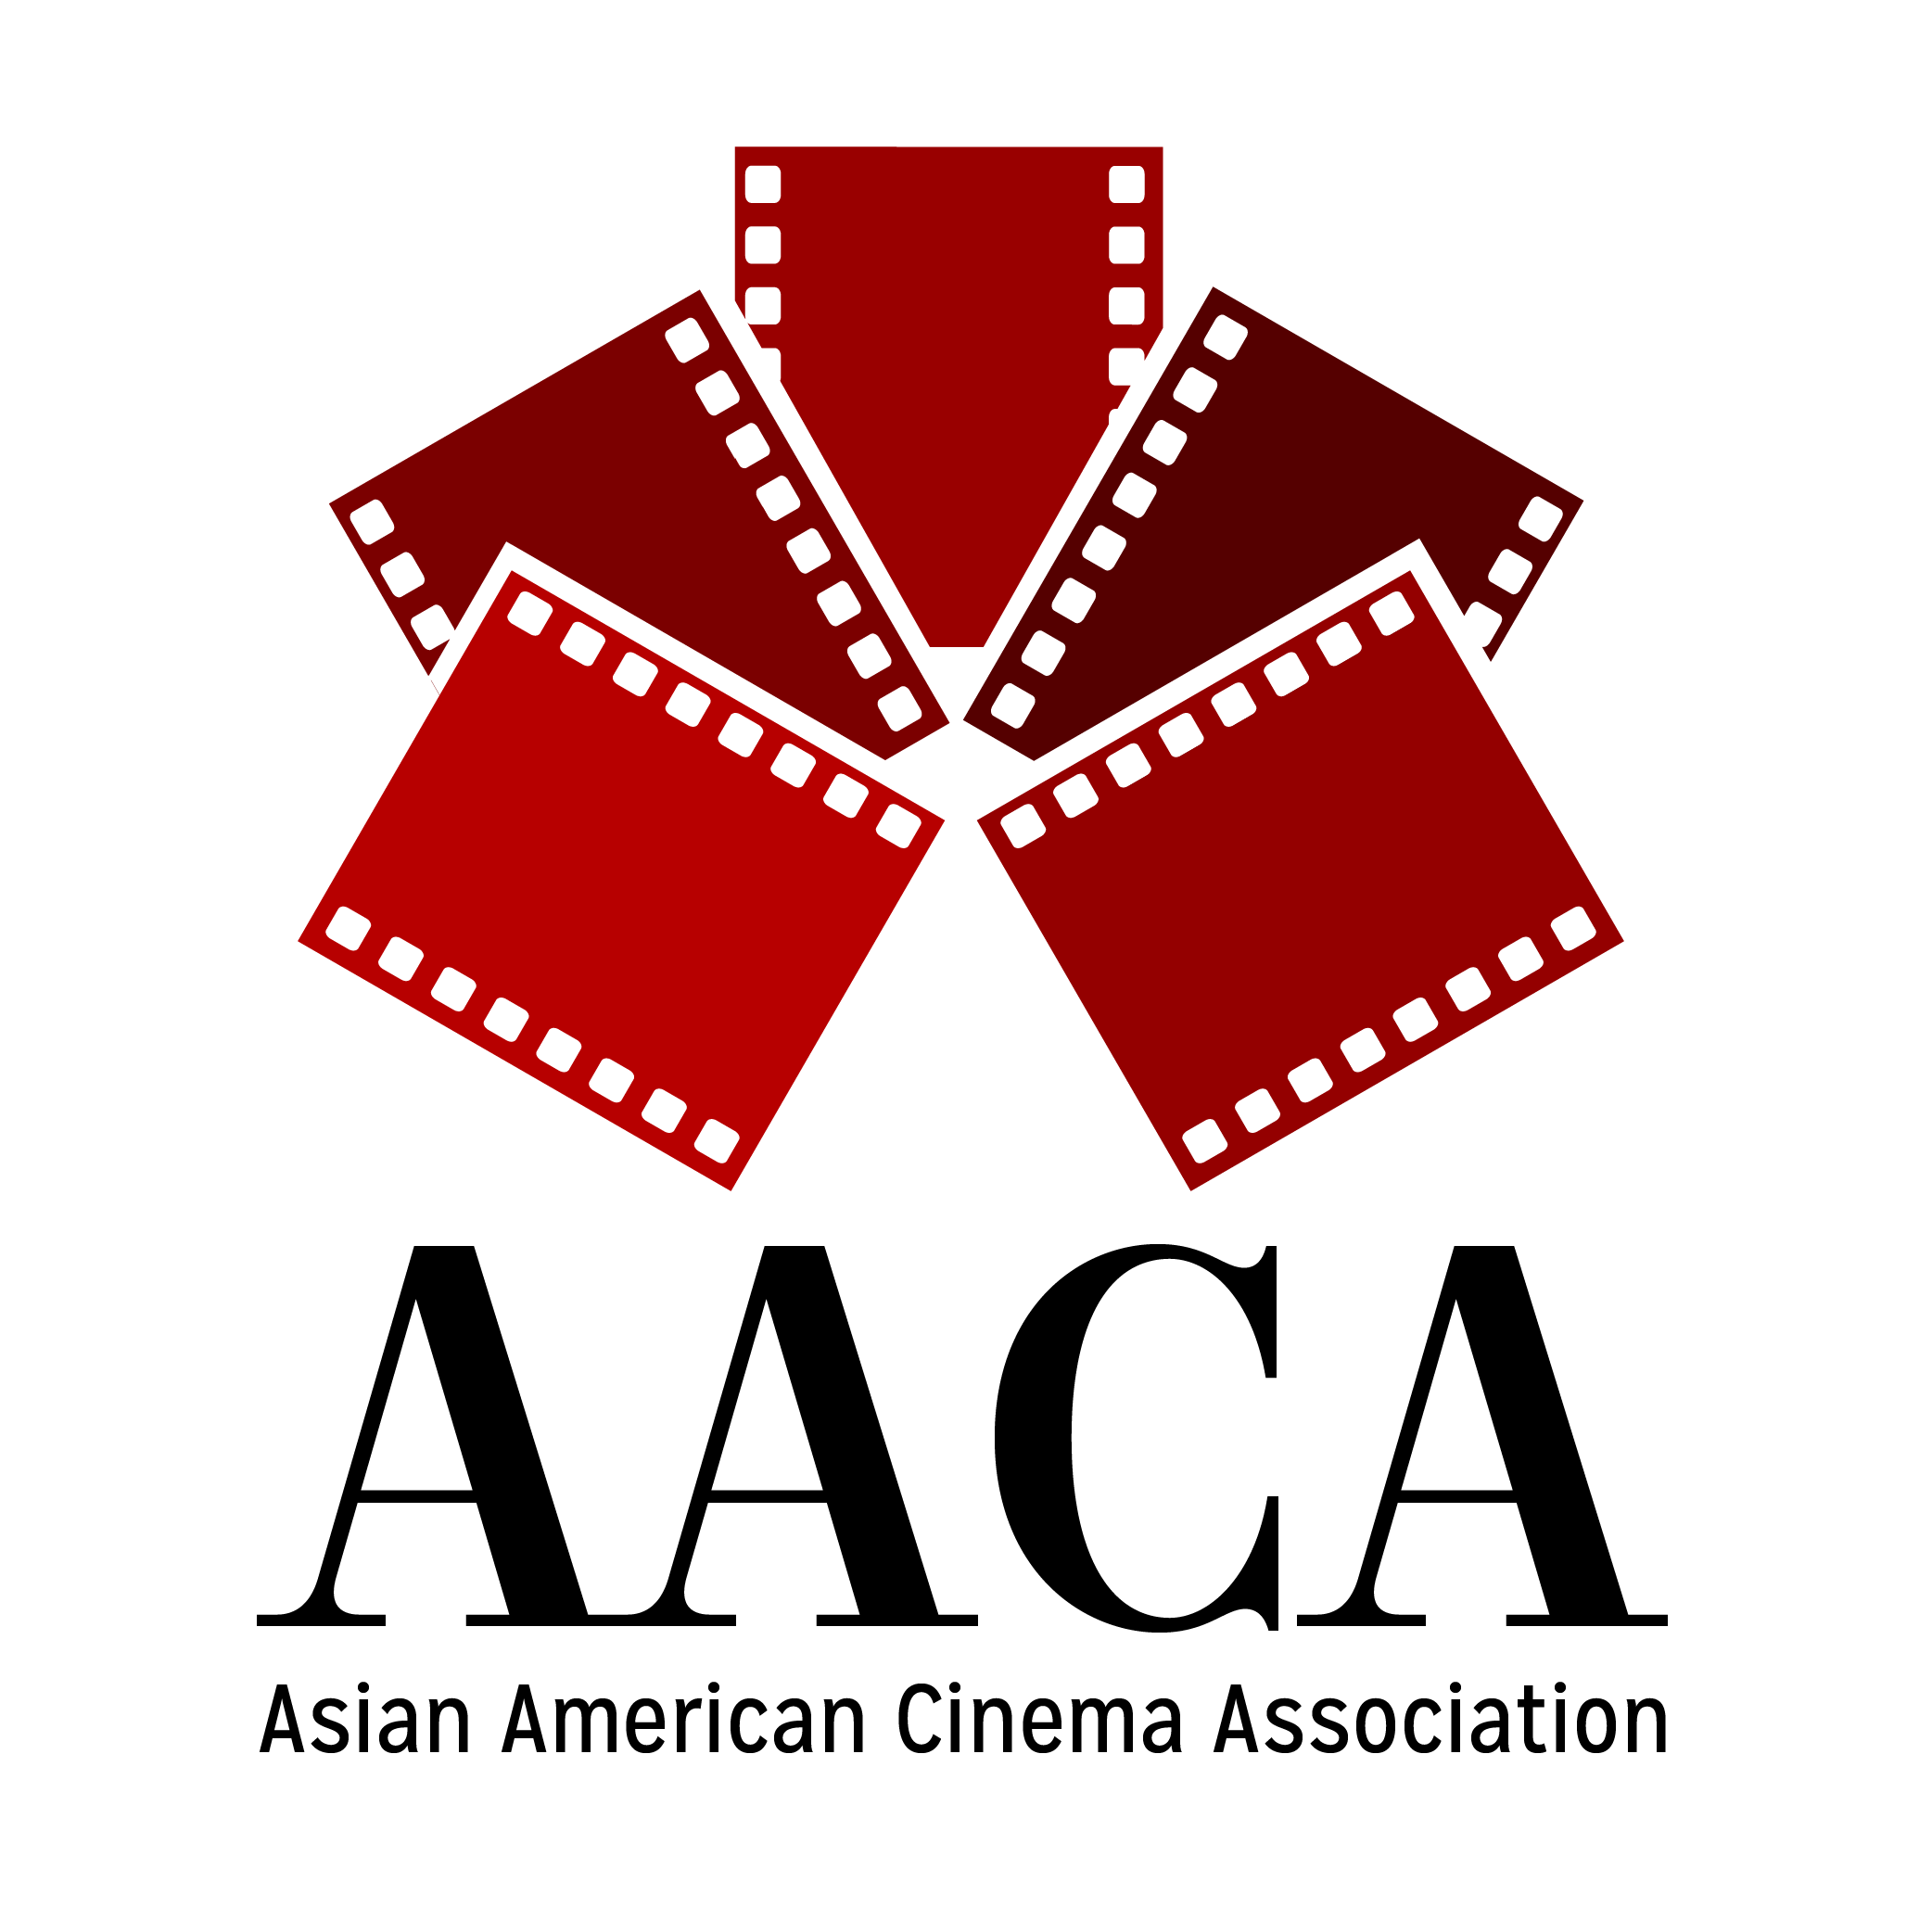 Asian American Cinema Association